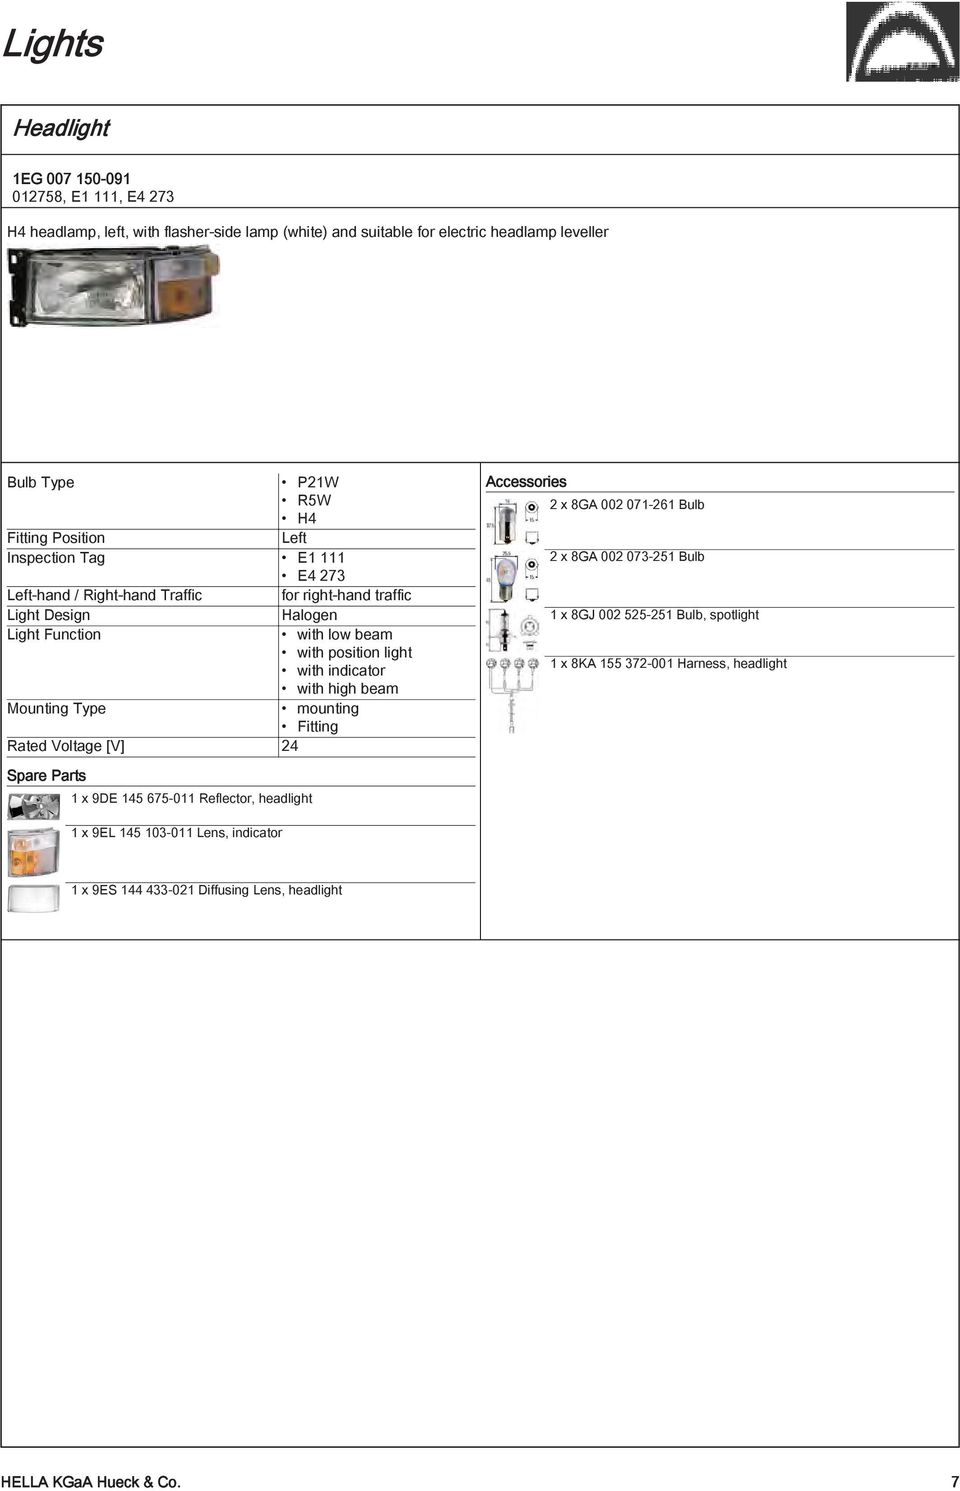 Products For Your Pdf Scania 124 Wiring Diagram With High Beam Mounting Type Fitting Rated Voltage V 24 Spare Parts 1